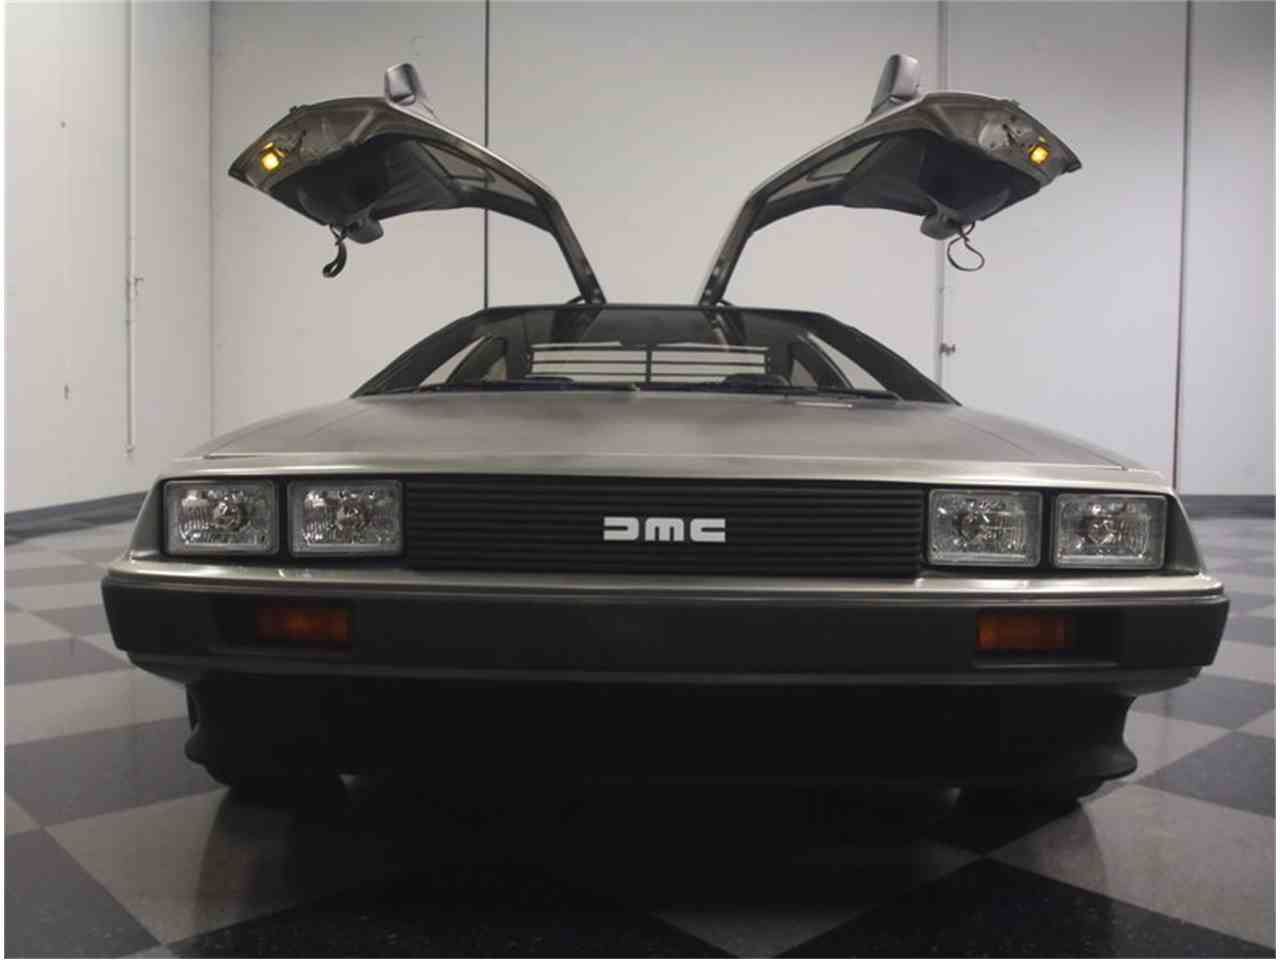 Large Picture of '81 DeLorean DMC-12 located in Georgia Offered by Streetside Classics - Atlanta - MGXM